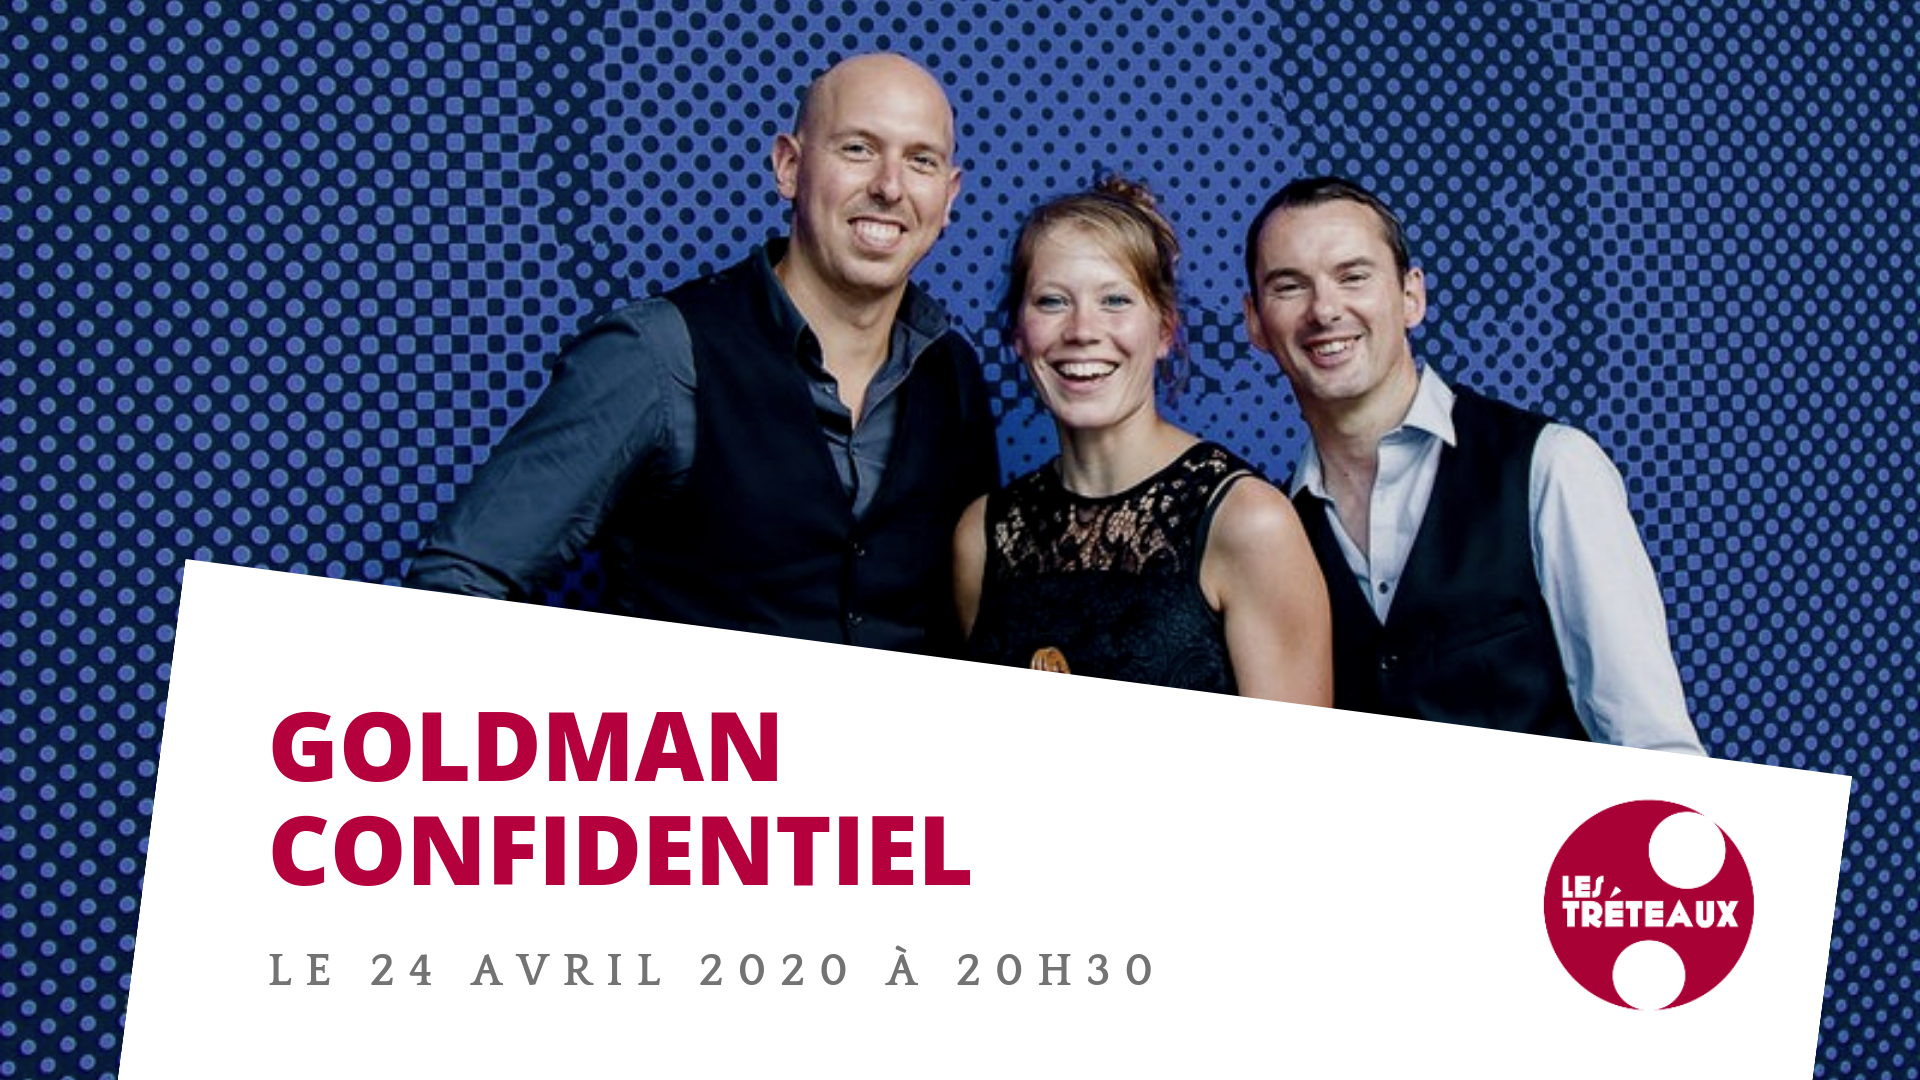 Goldman Confidentiel